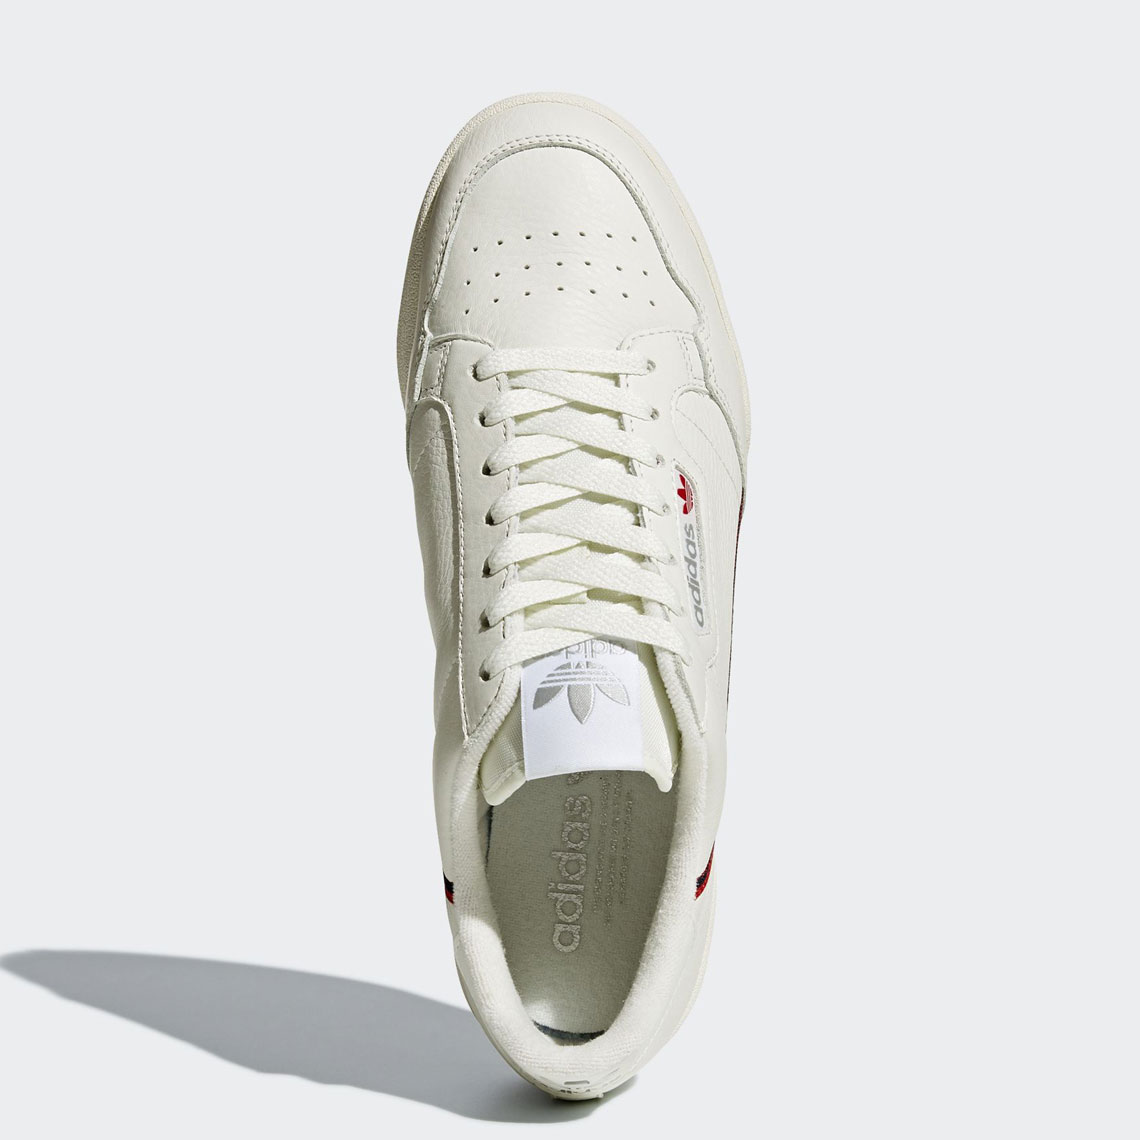 official photos 3a446 8b602 adidas Rascal Release Date June, 2018. Style Code B41674. show comments